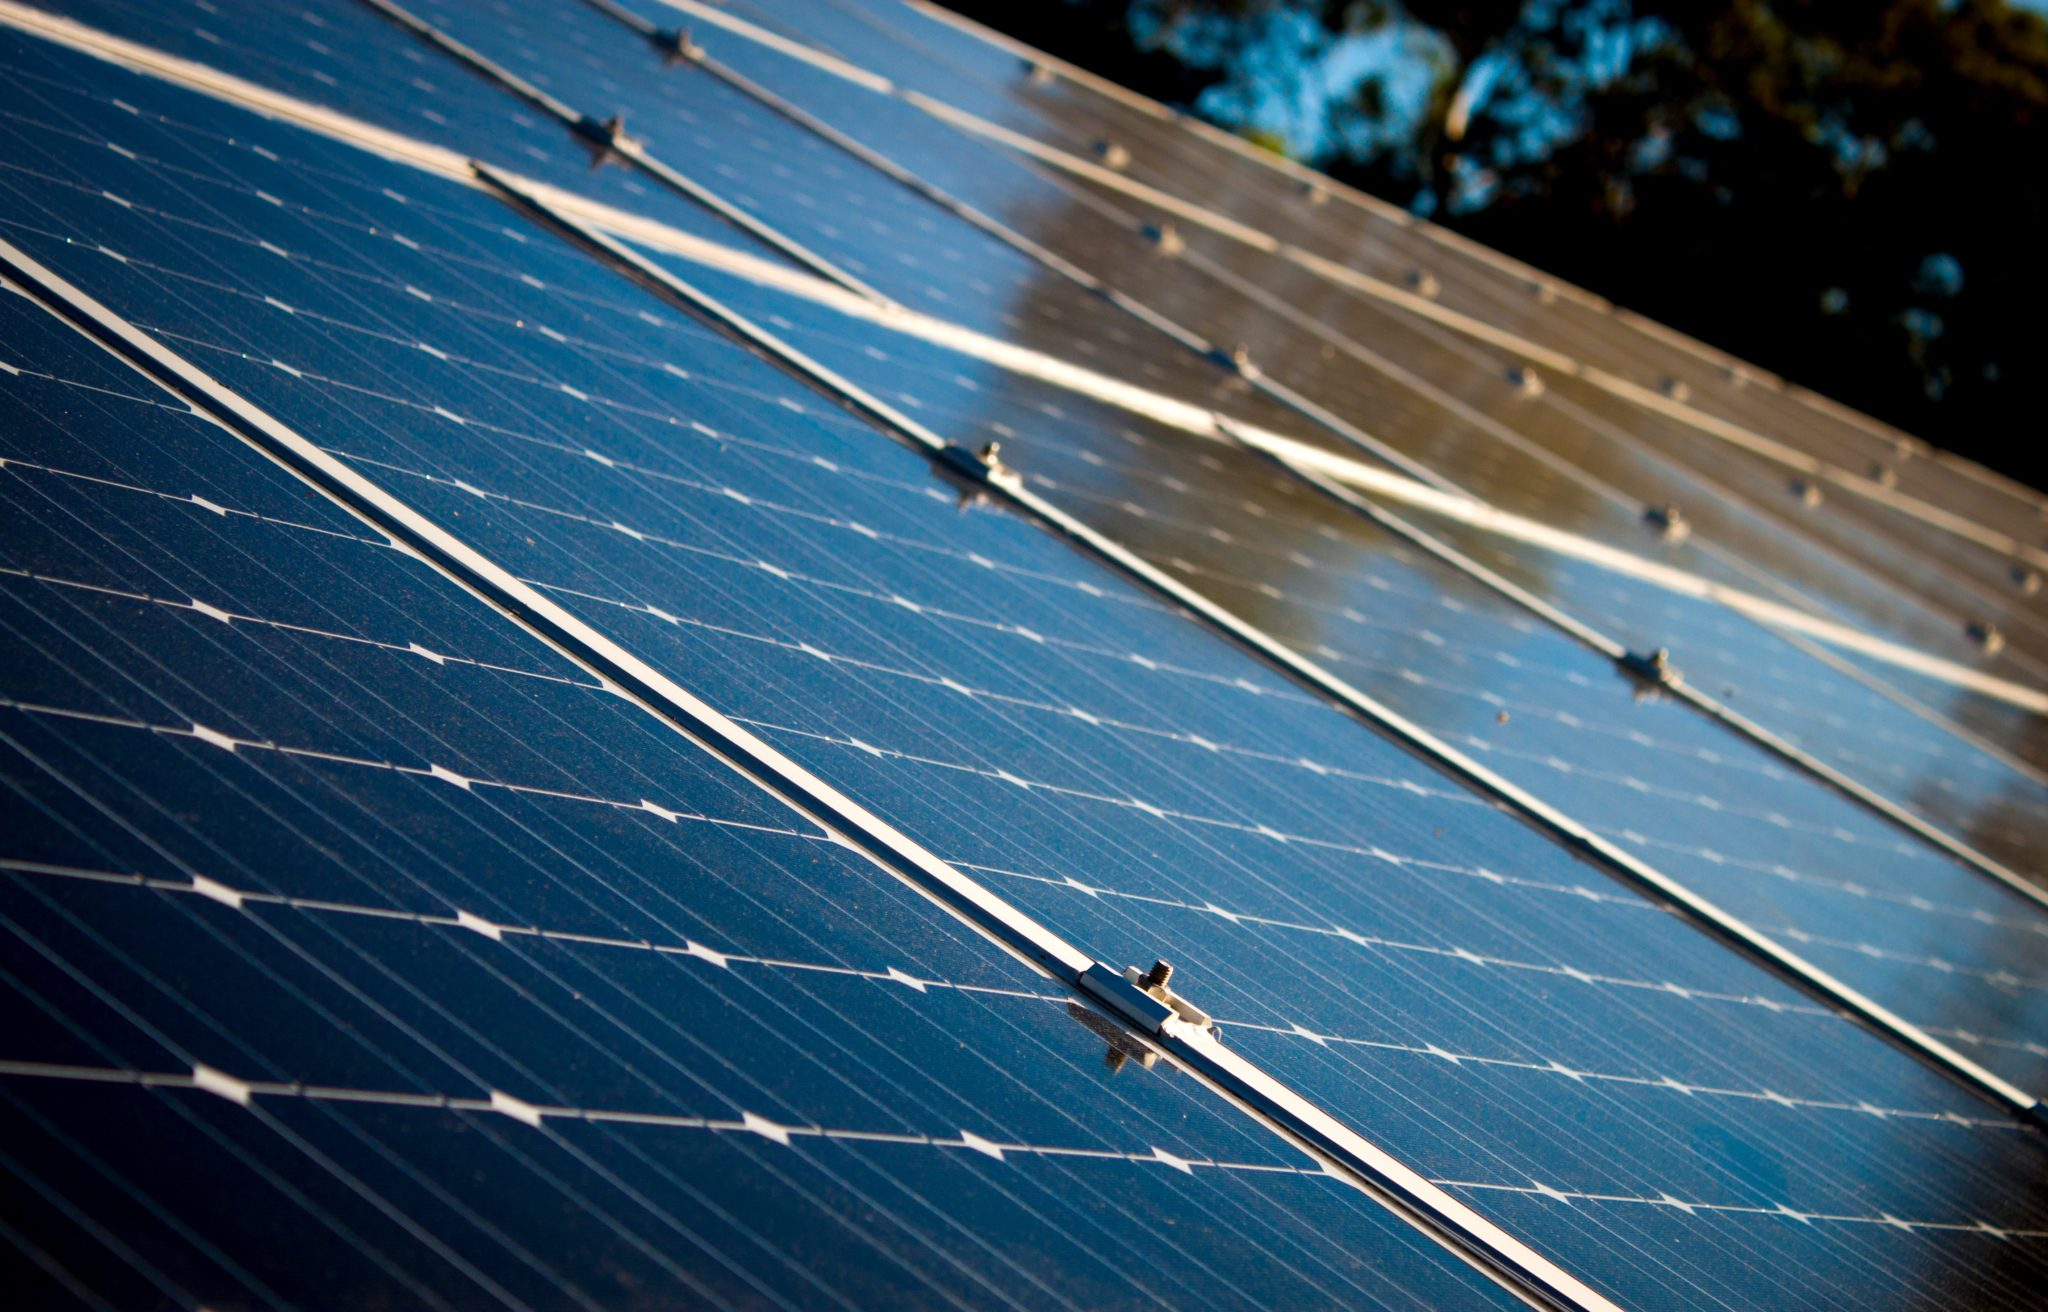 Solar Beats U.S. Import Tariff to Become Biggest Source of Power